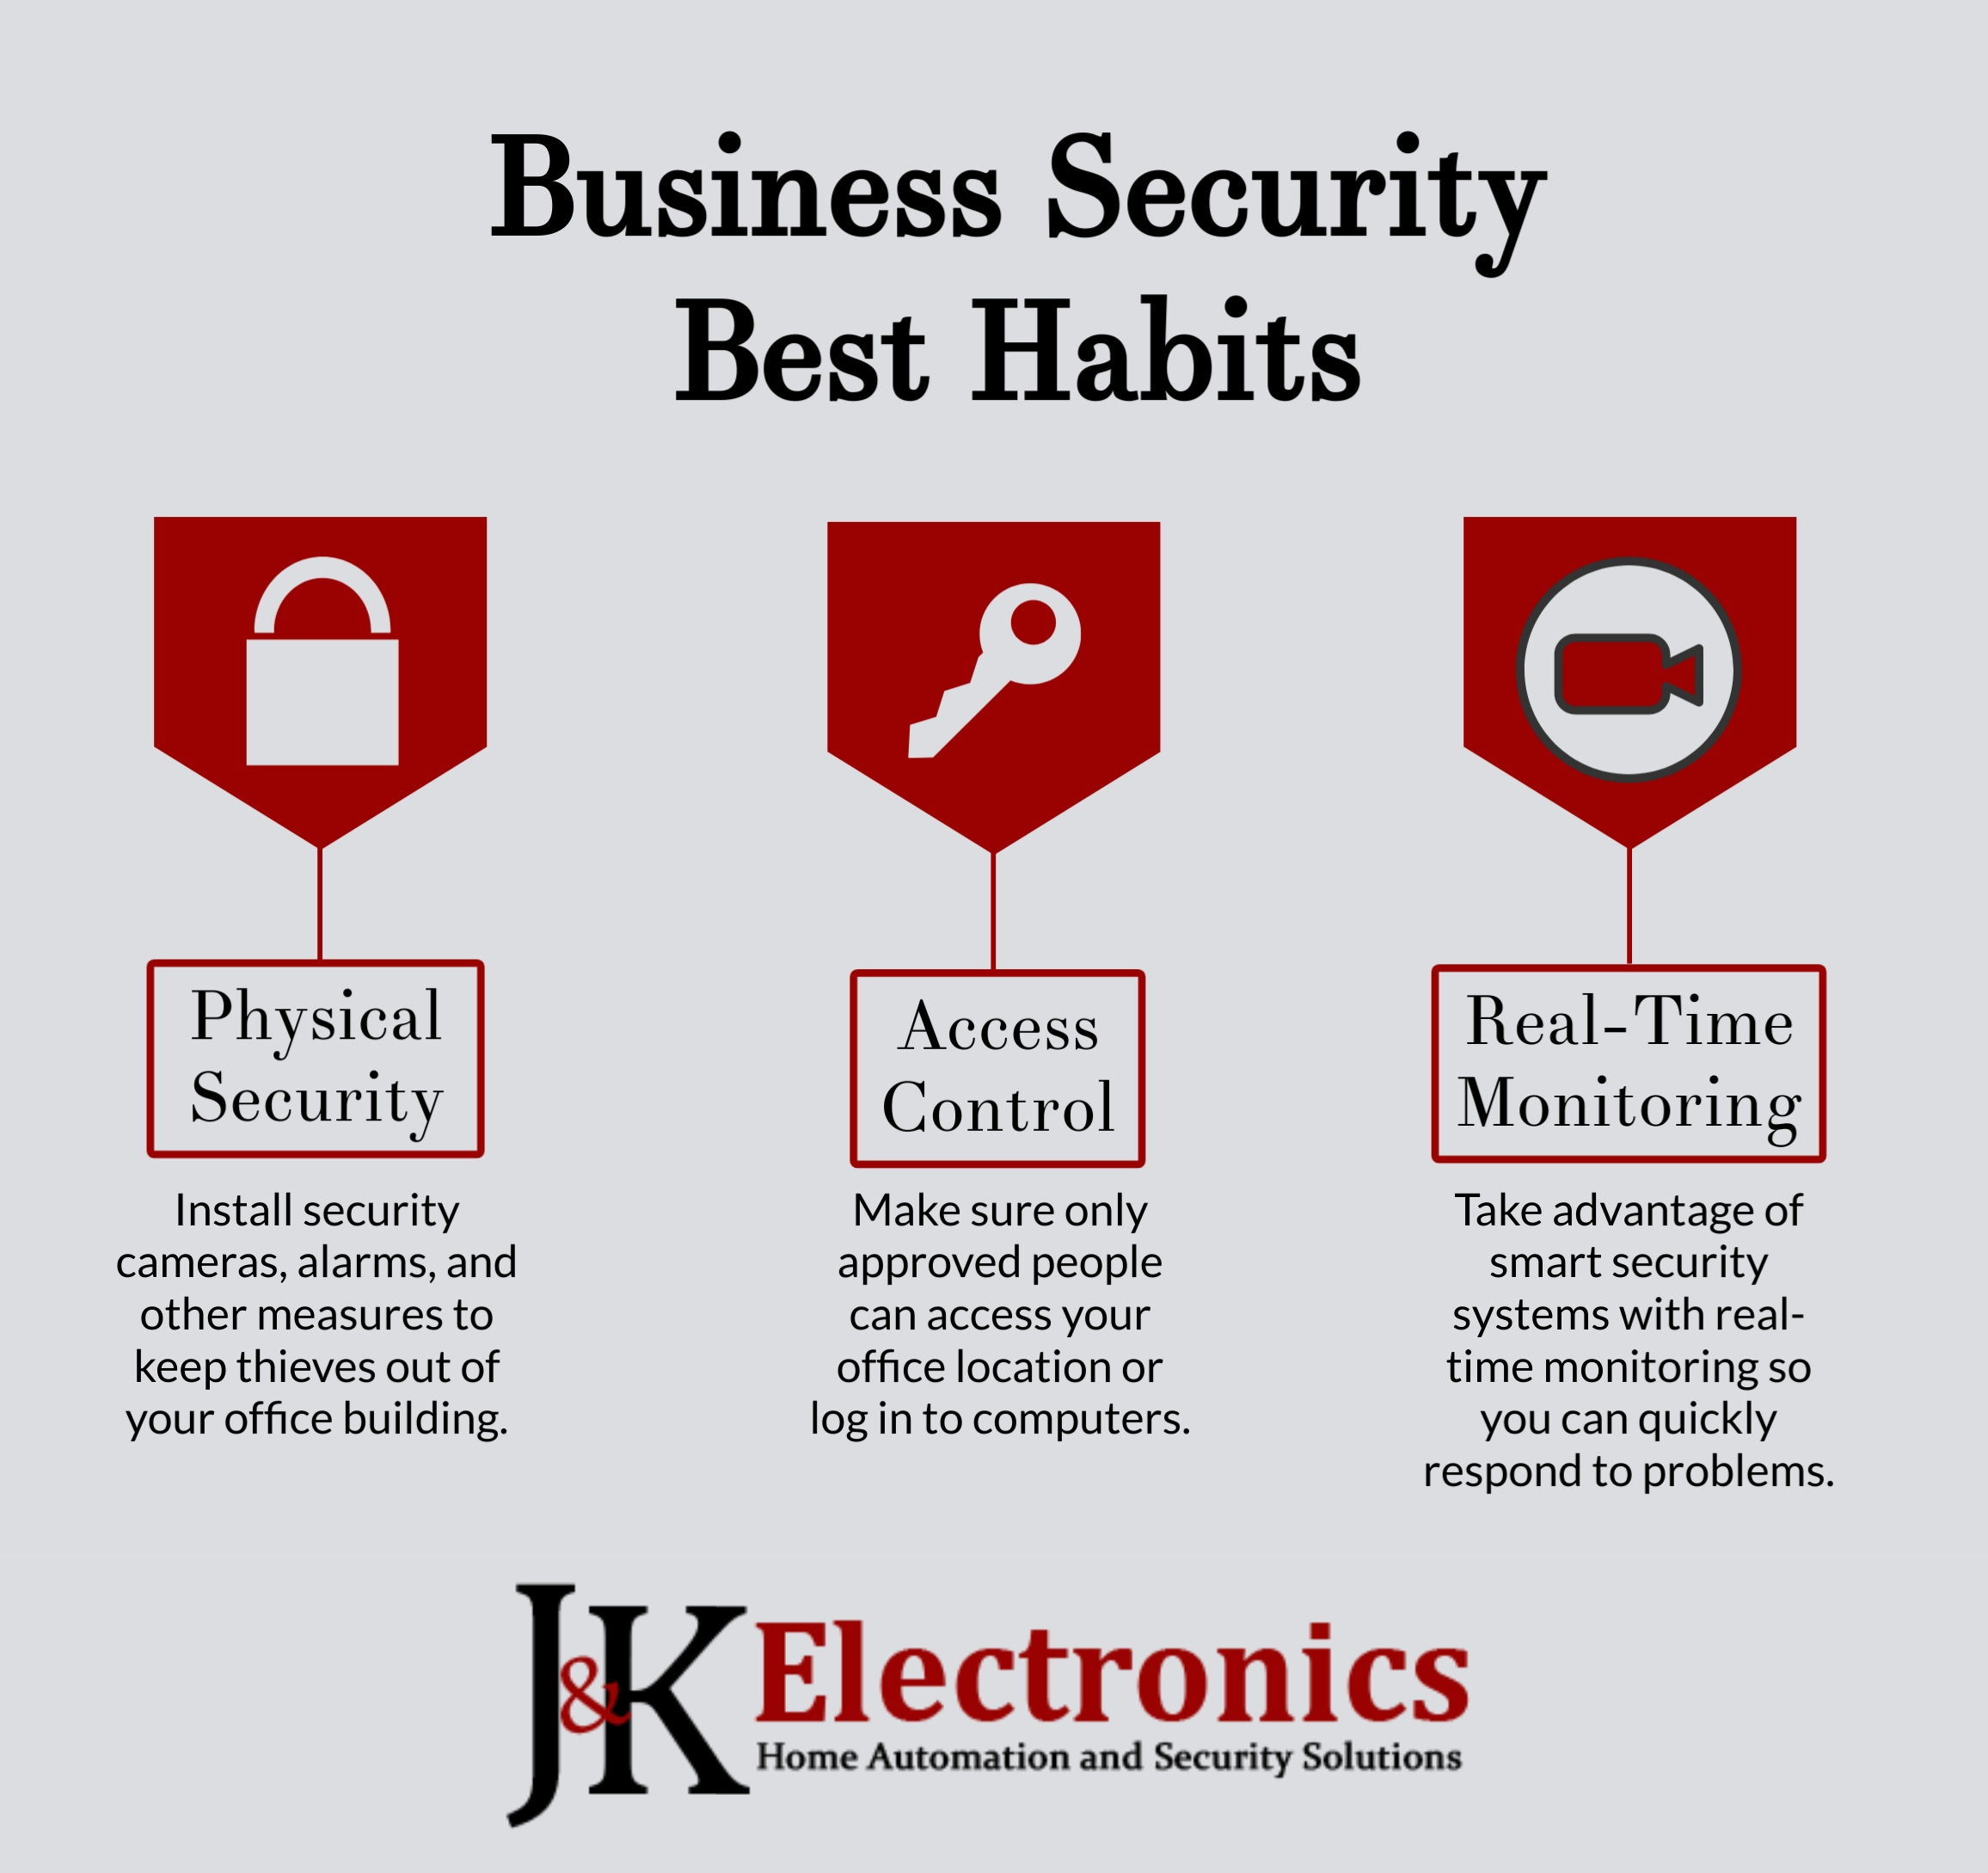 Business Security Best Practices for 2020, J&K Electronics, Houston